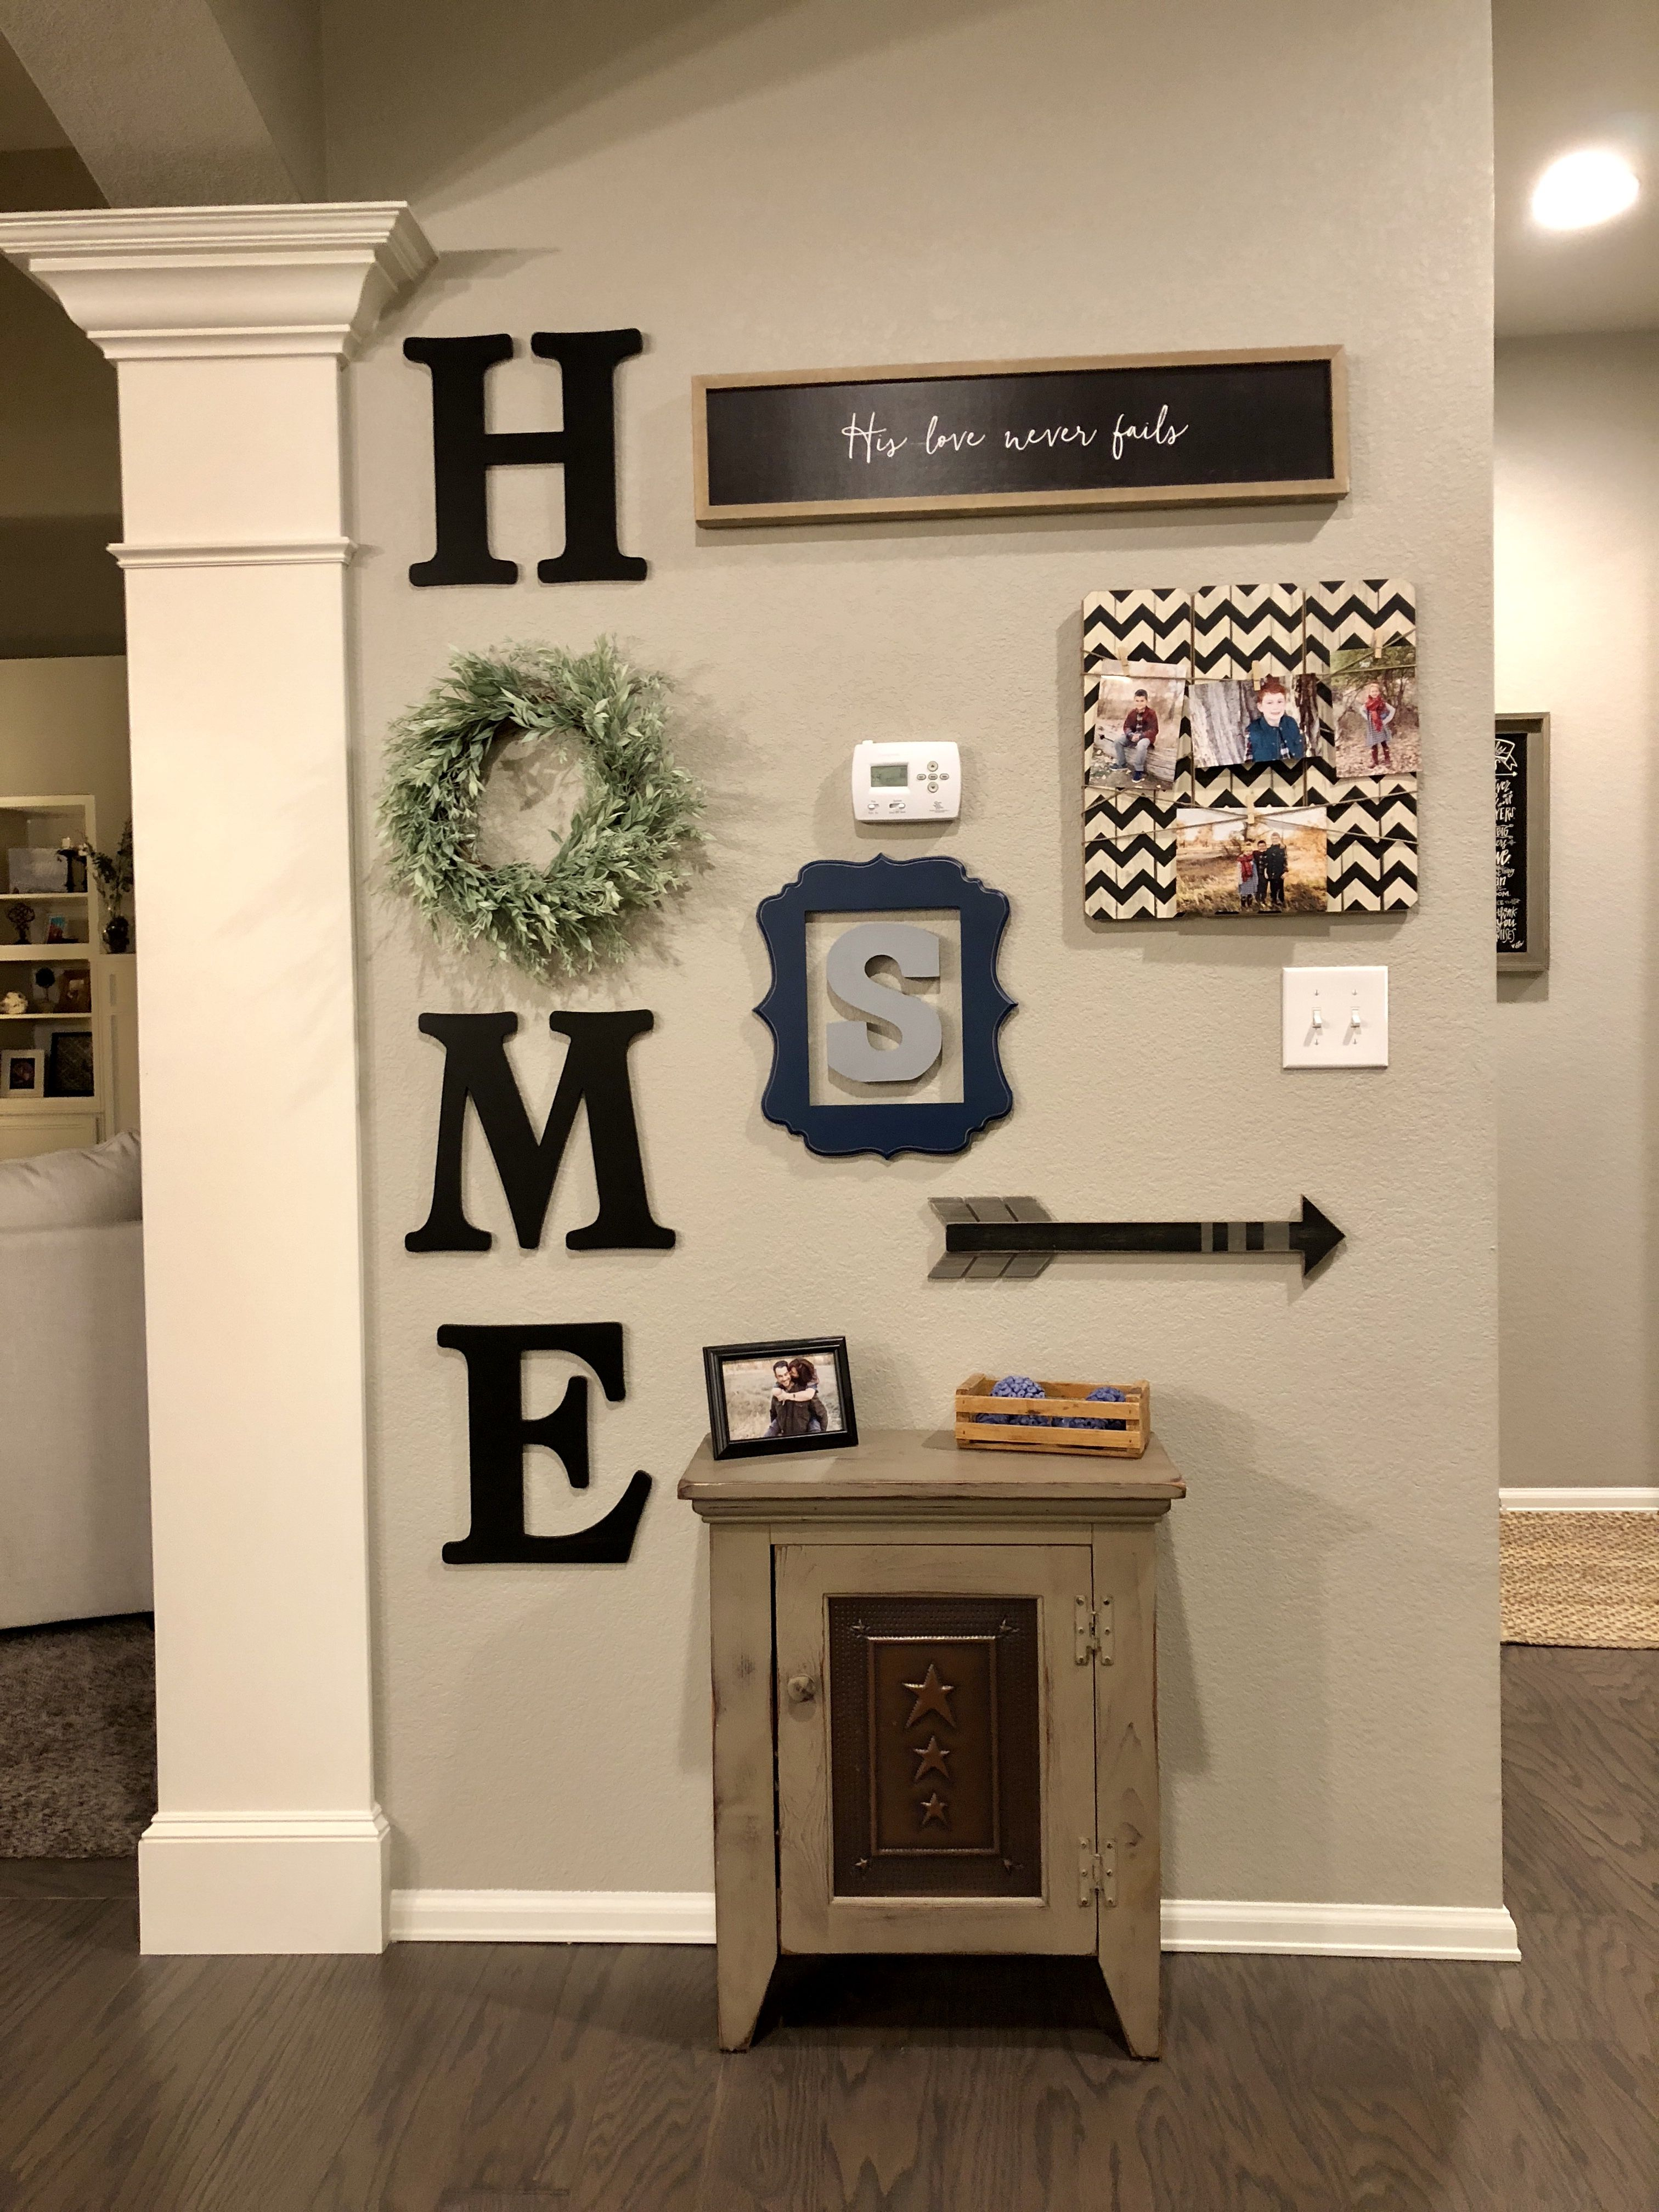 Creating A Rustic Living Room Decor: Copied These Ideas And Combined Them To Make My Own Rustic